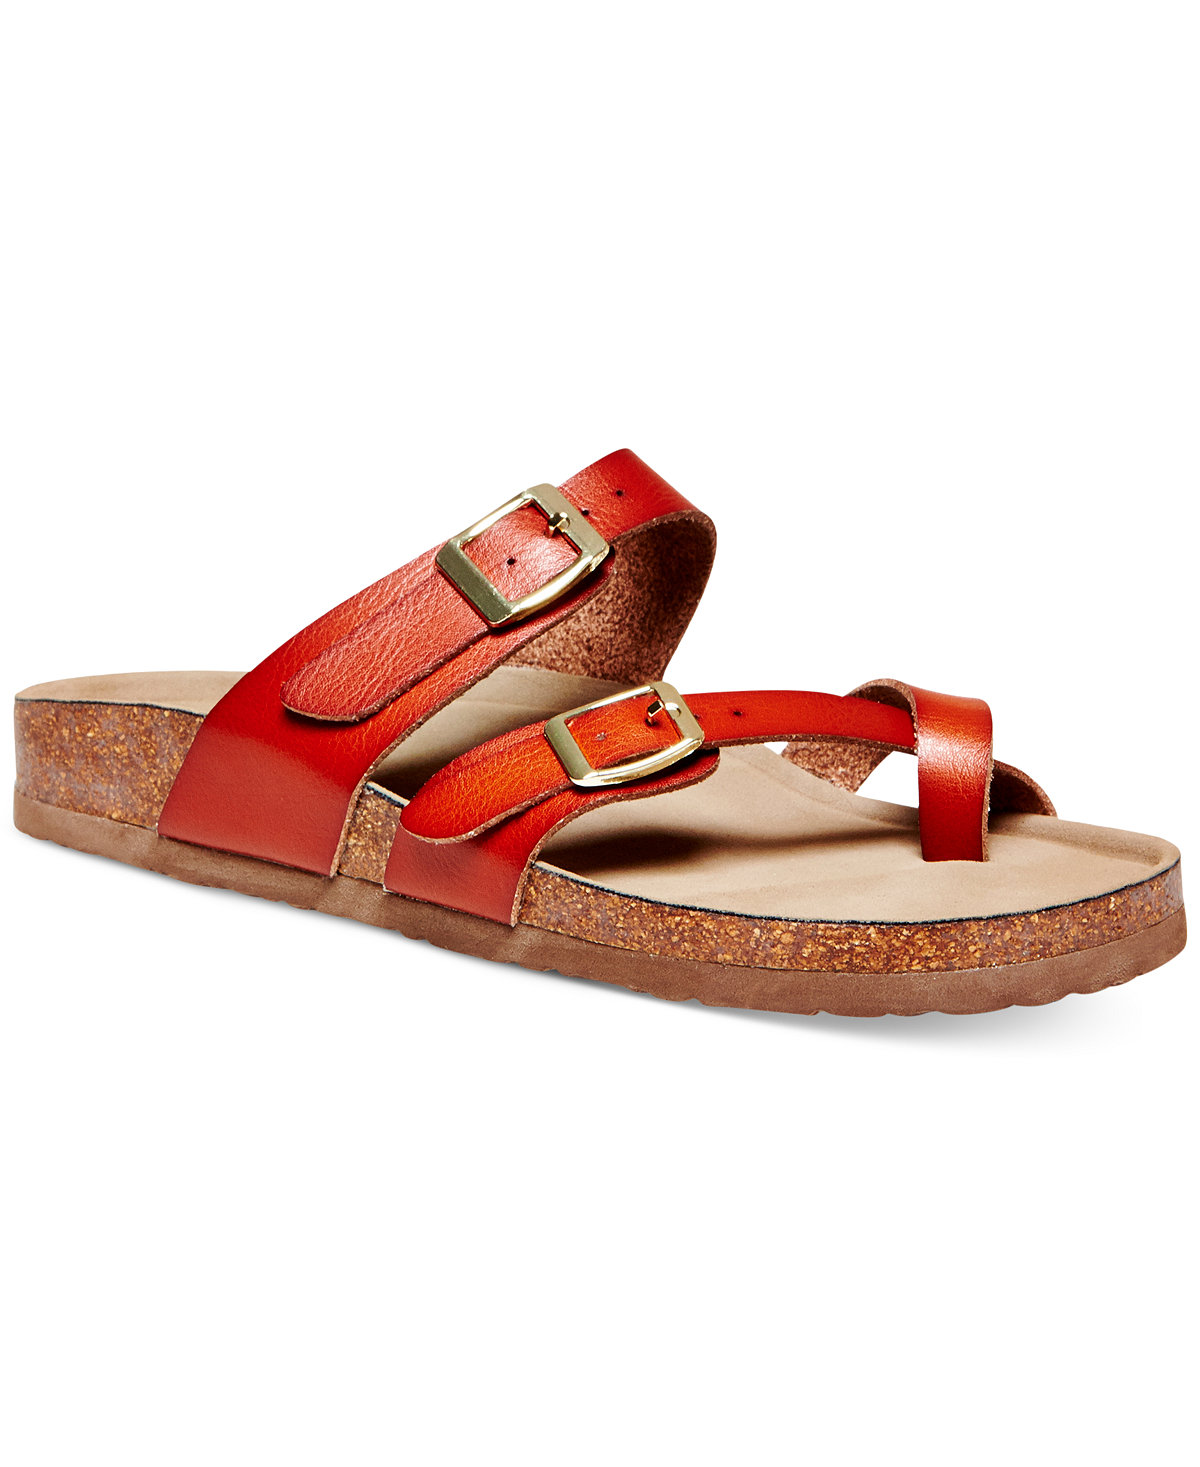 cf4b1fa4376 16 Birkenstock Look-Alikes You Can Actually Afford – SheKnows